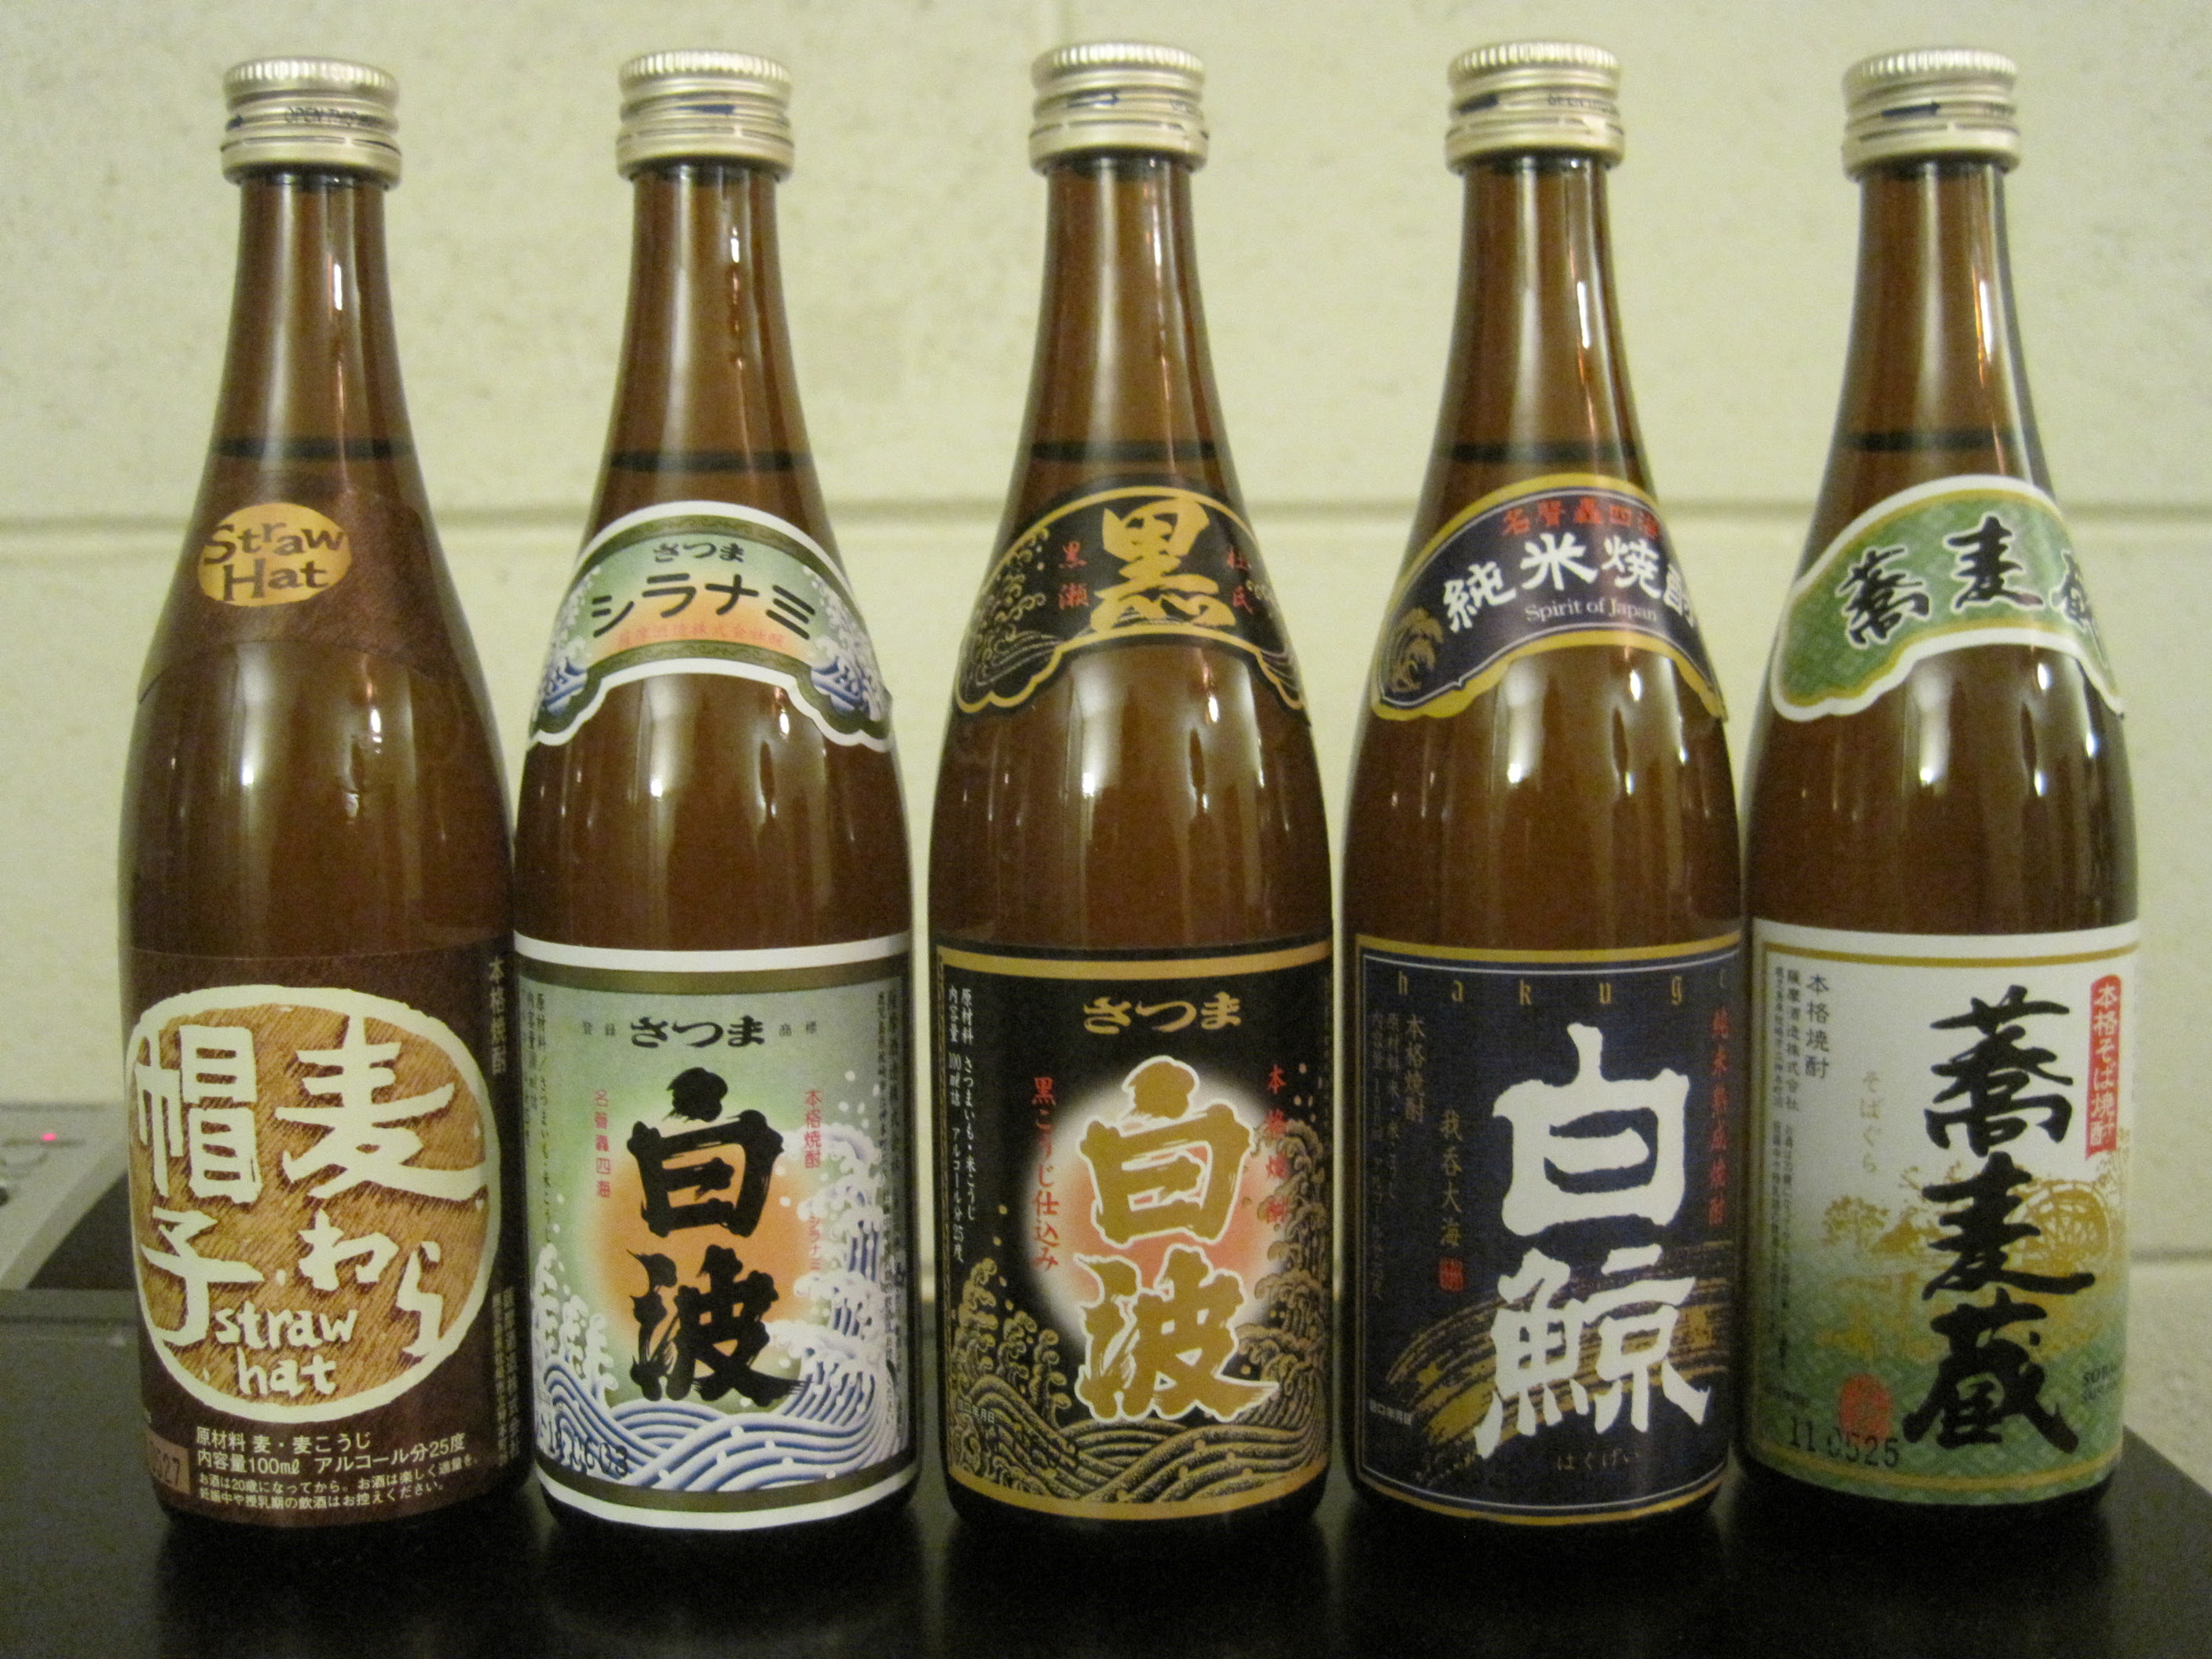 Sampler of five types of shochu